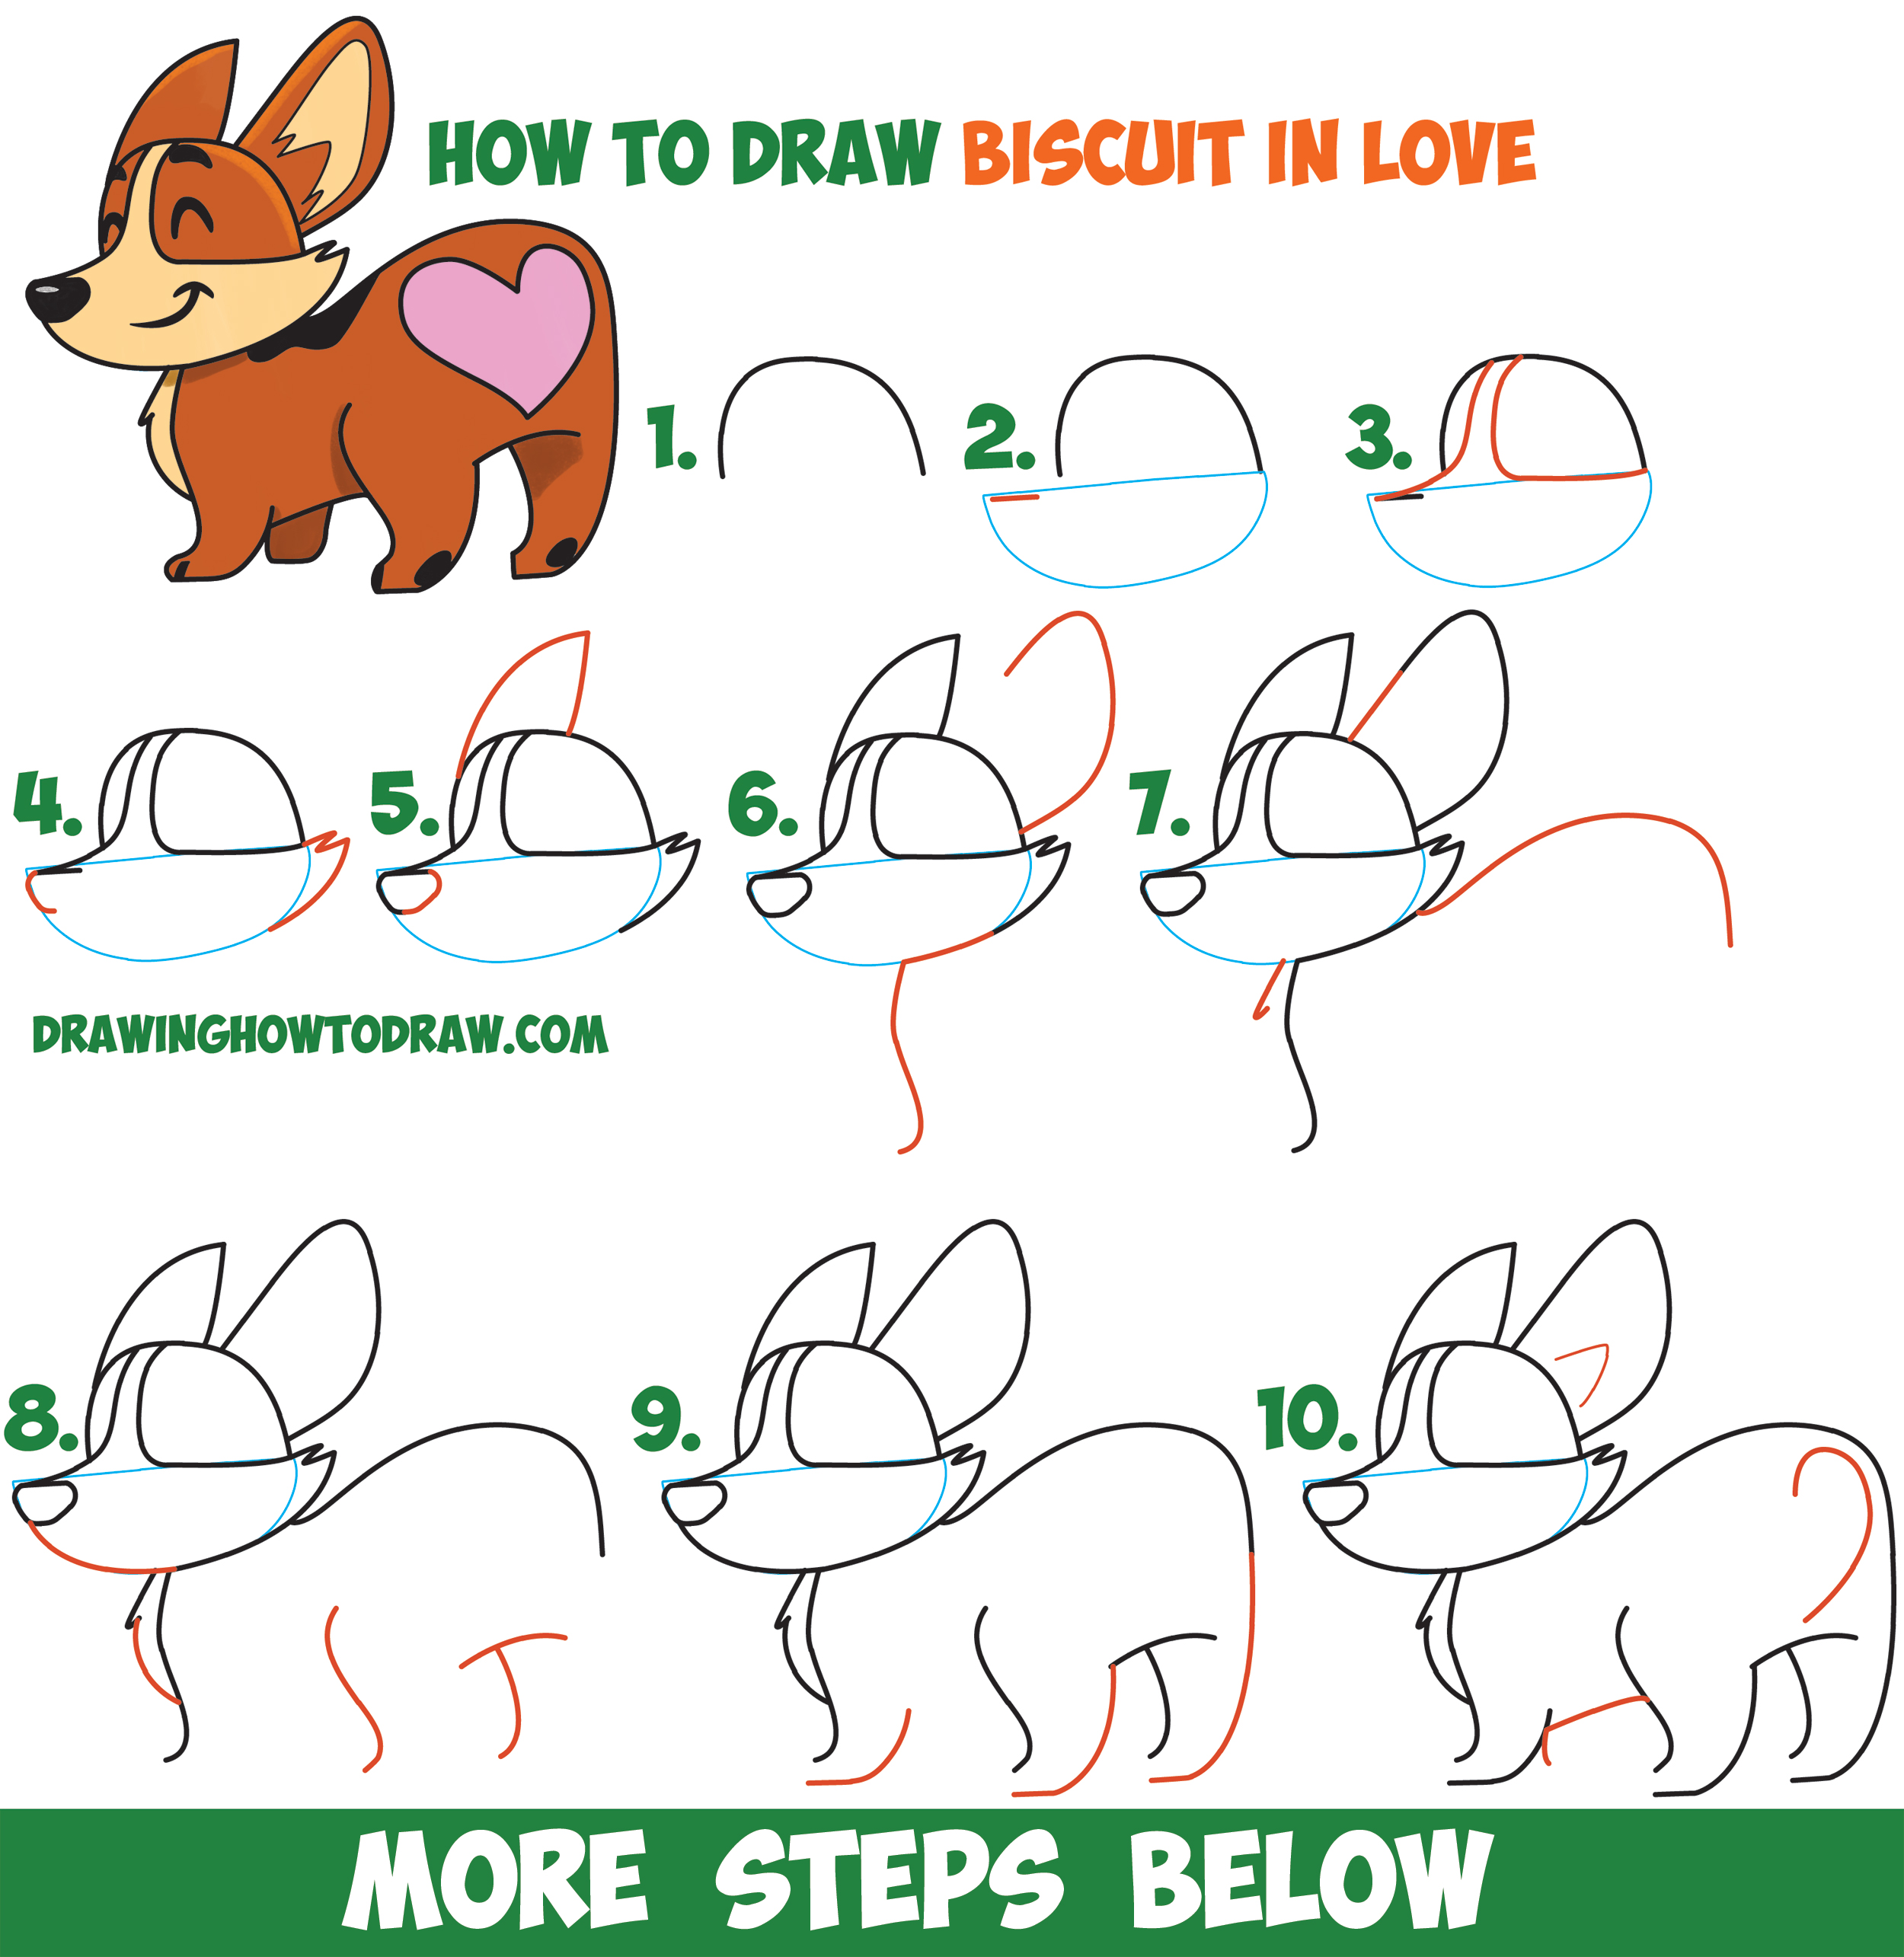 How to Draw Biscuit the Dog from Facebook Messenger - Kawaii / Chibi Style Dog Easy Step by Step Drawing Tutorial